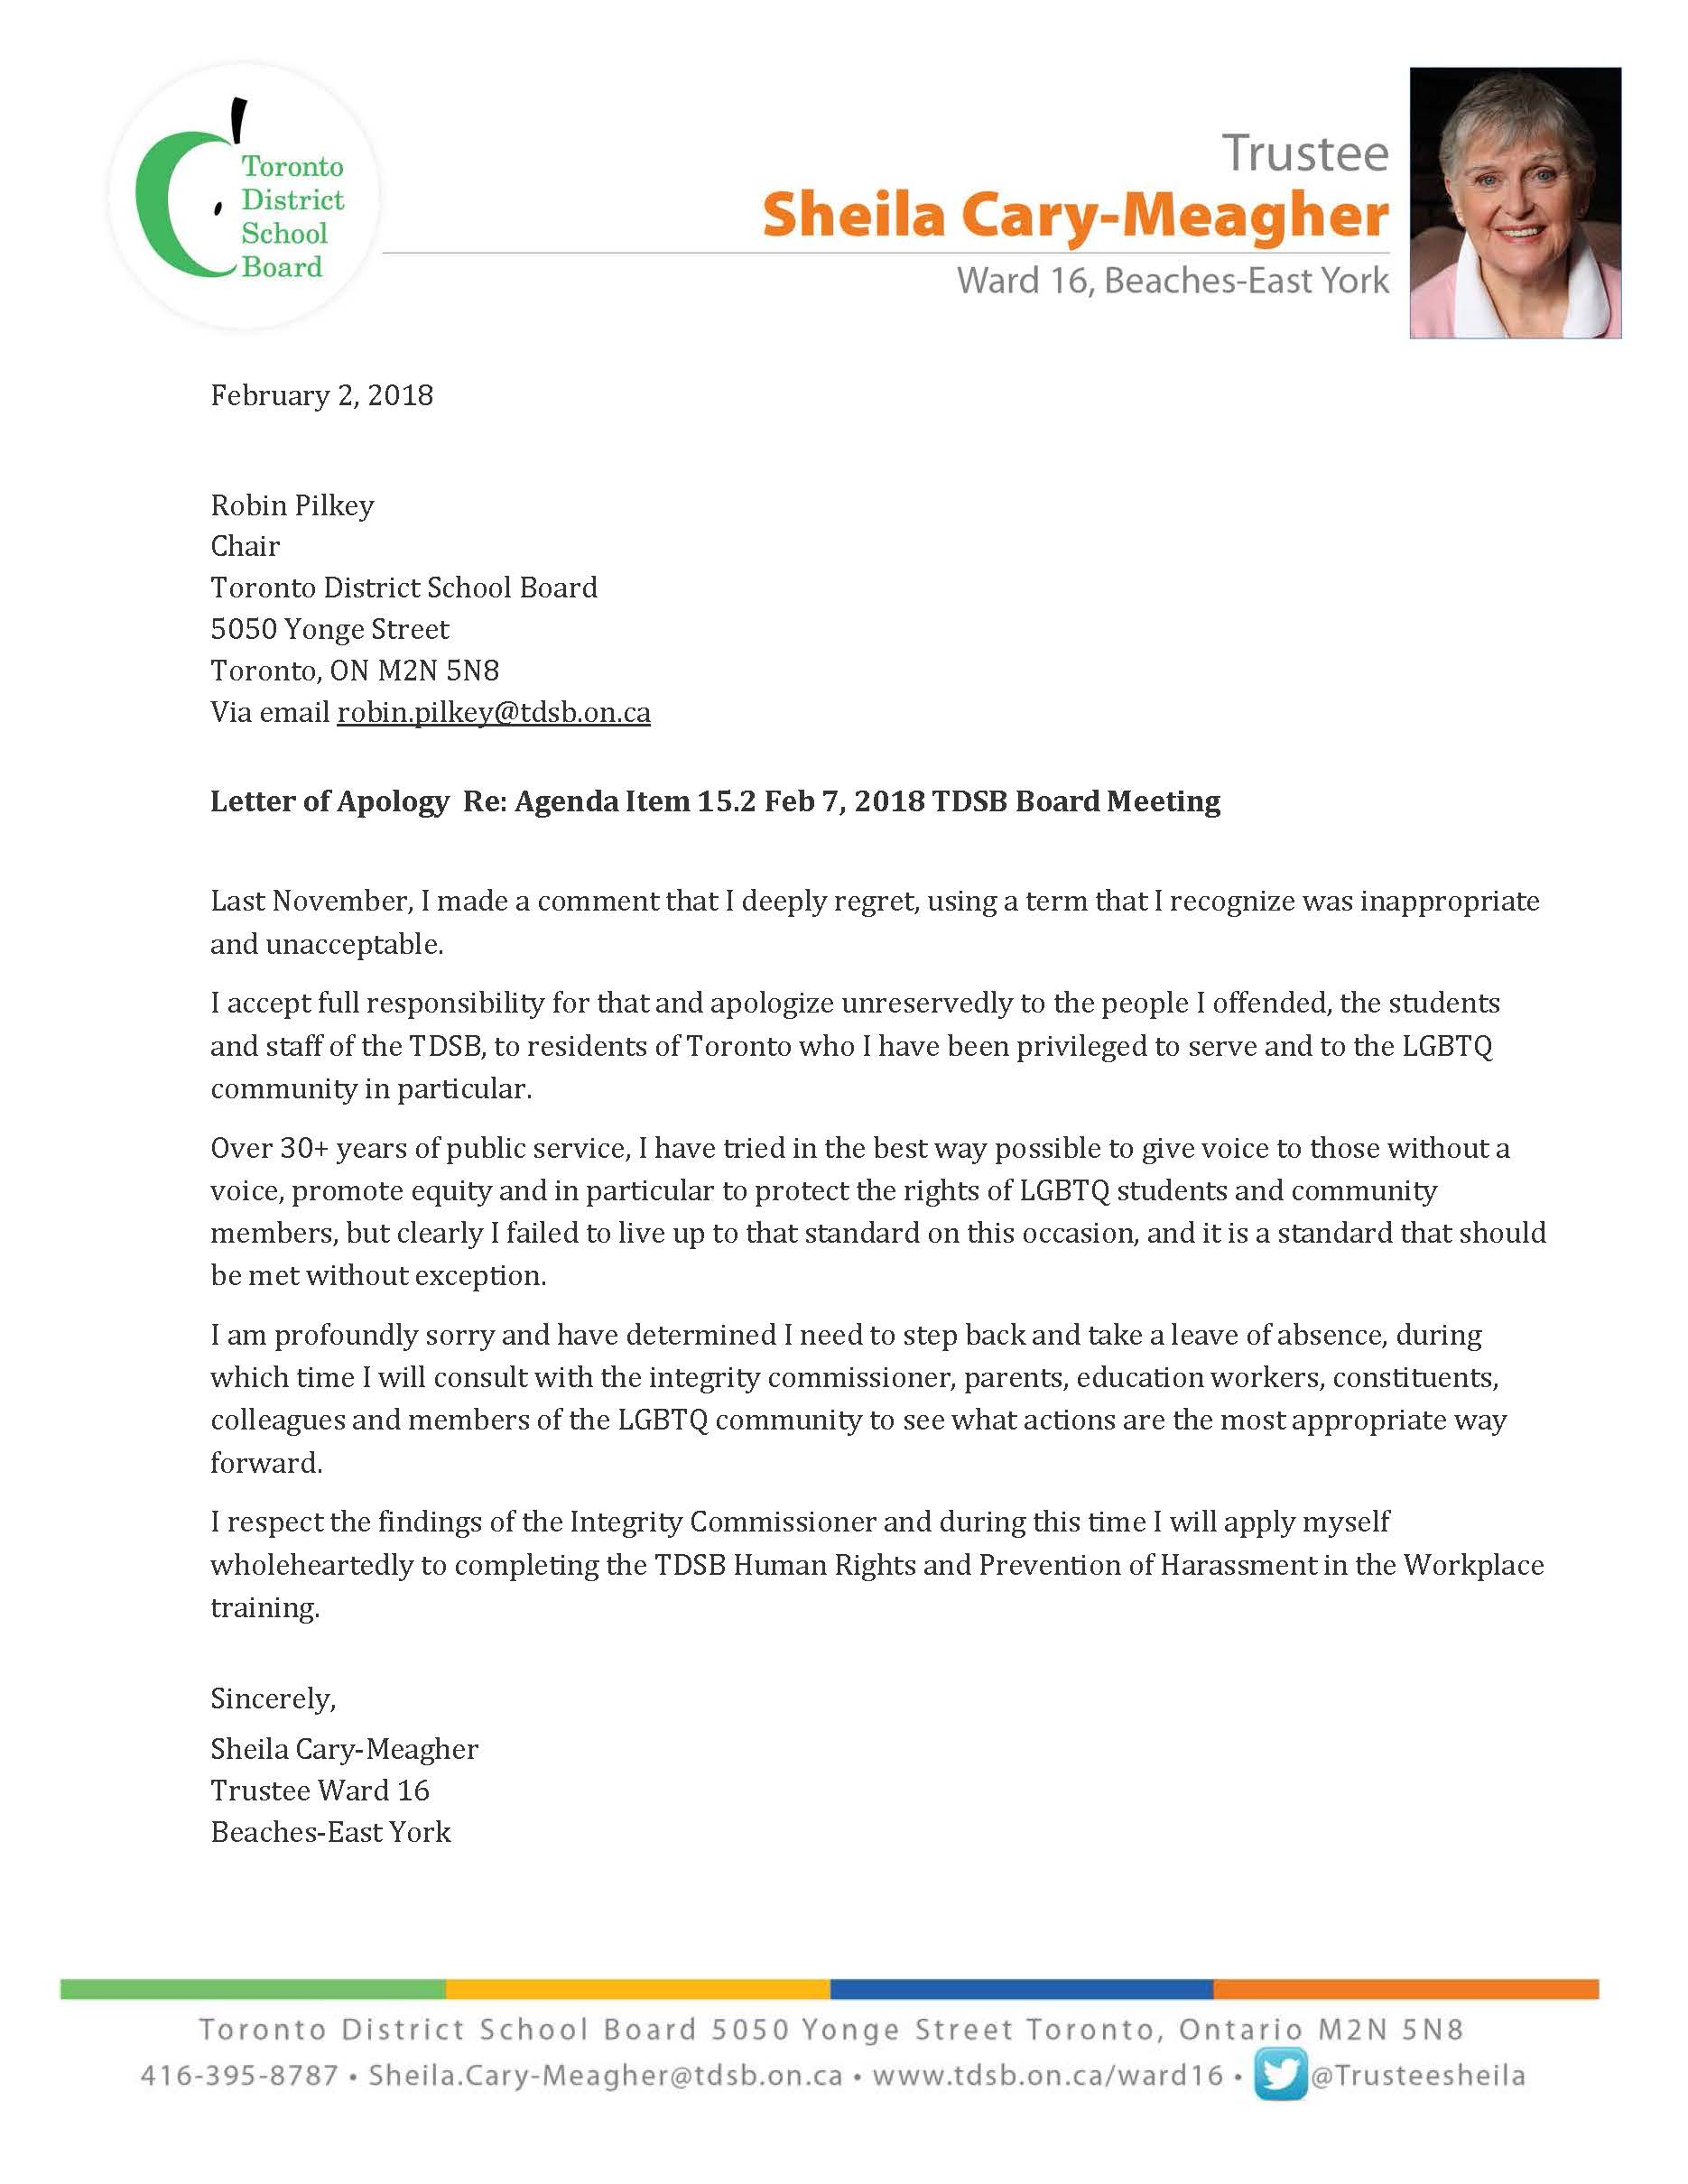 Letter of Apology Re: Agenda Item 15.2